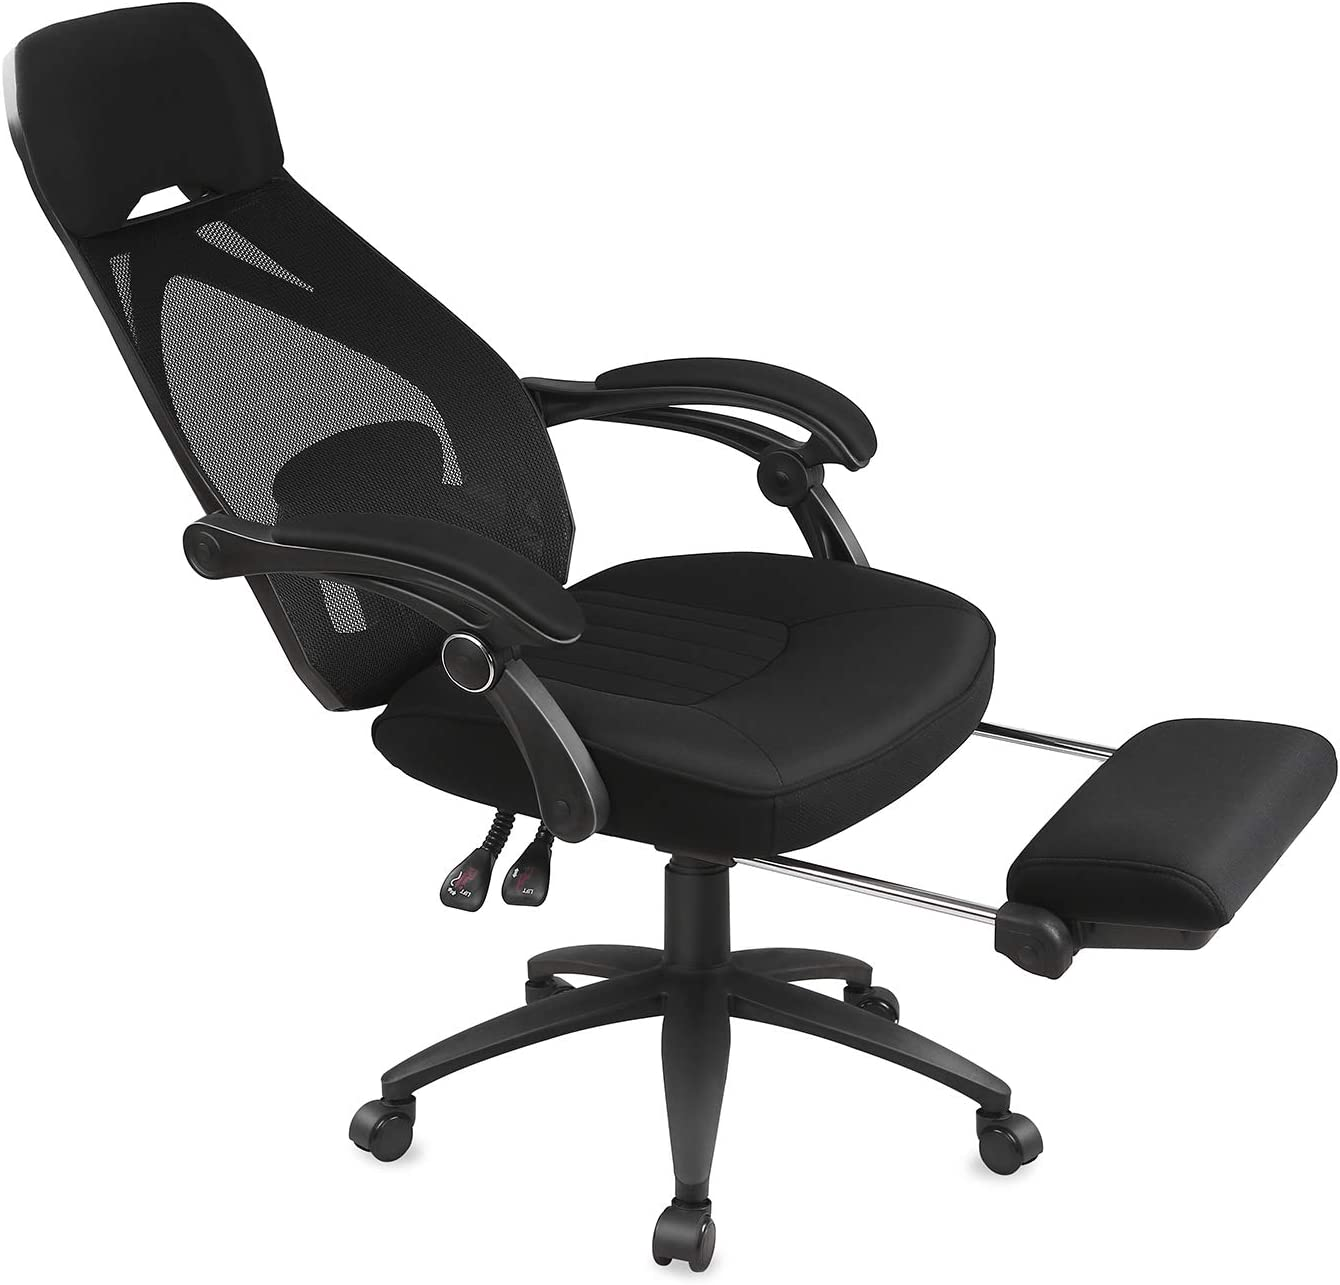 Devaise Ergonomics Recliner Office Chair High Back Mesh Computer Desk Chair With Adjustable Lumbar And Footrest